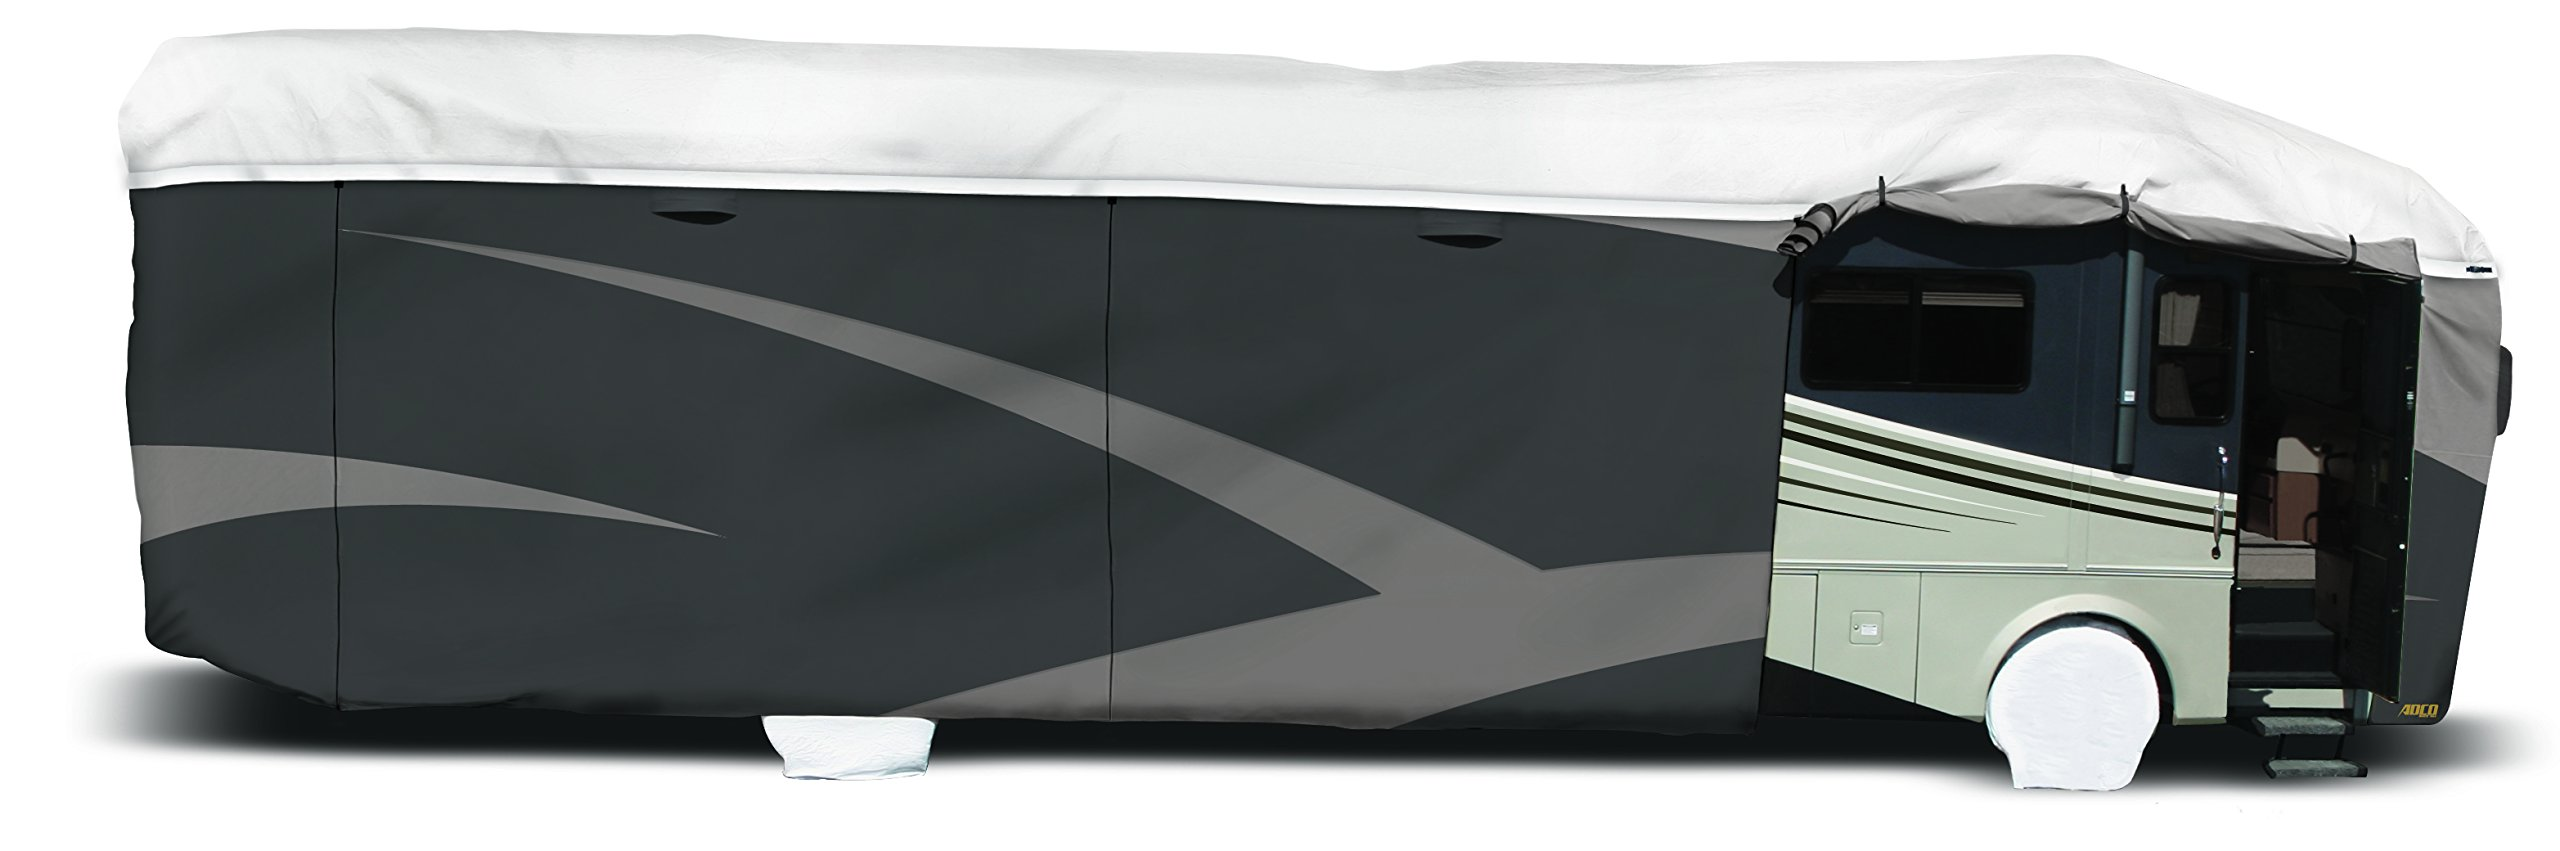 ADCO 34824 Designer Series Gray/White 28' 1'' - 31' DuPont Tyvek Class A Motorhome Cover by ADCO (Image #2)